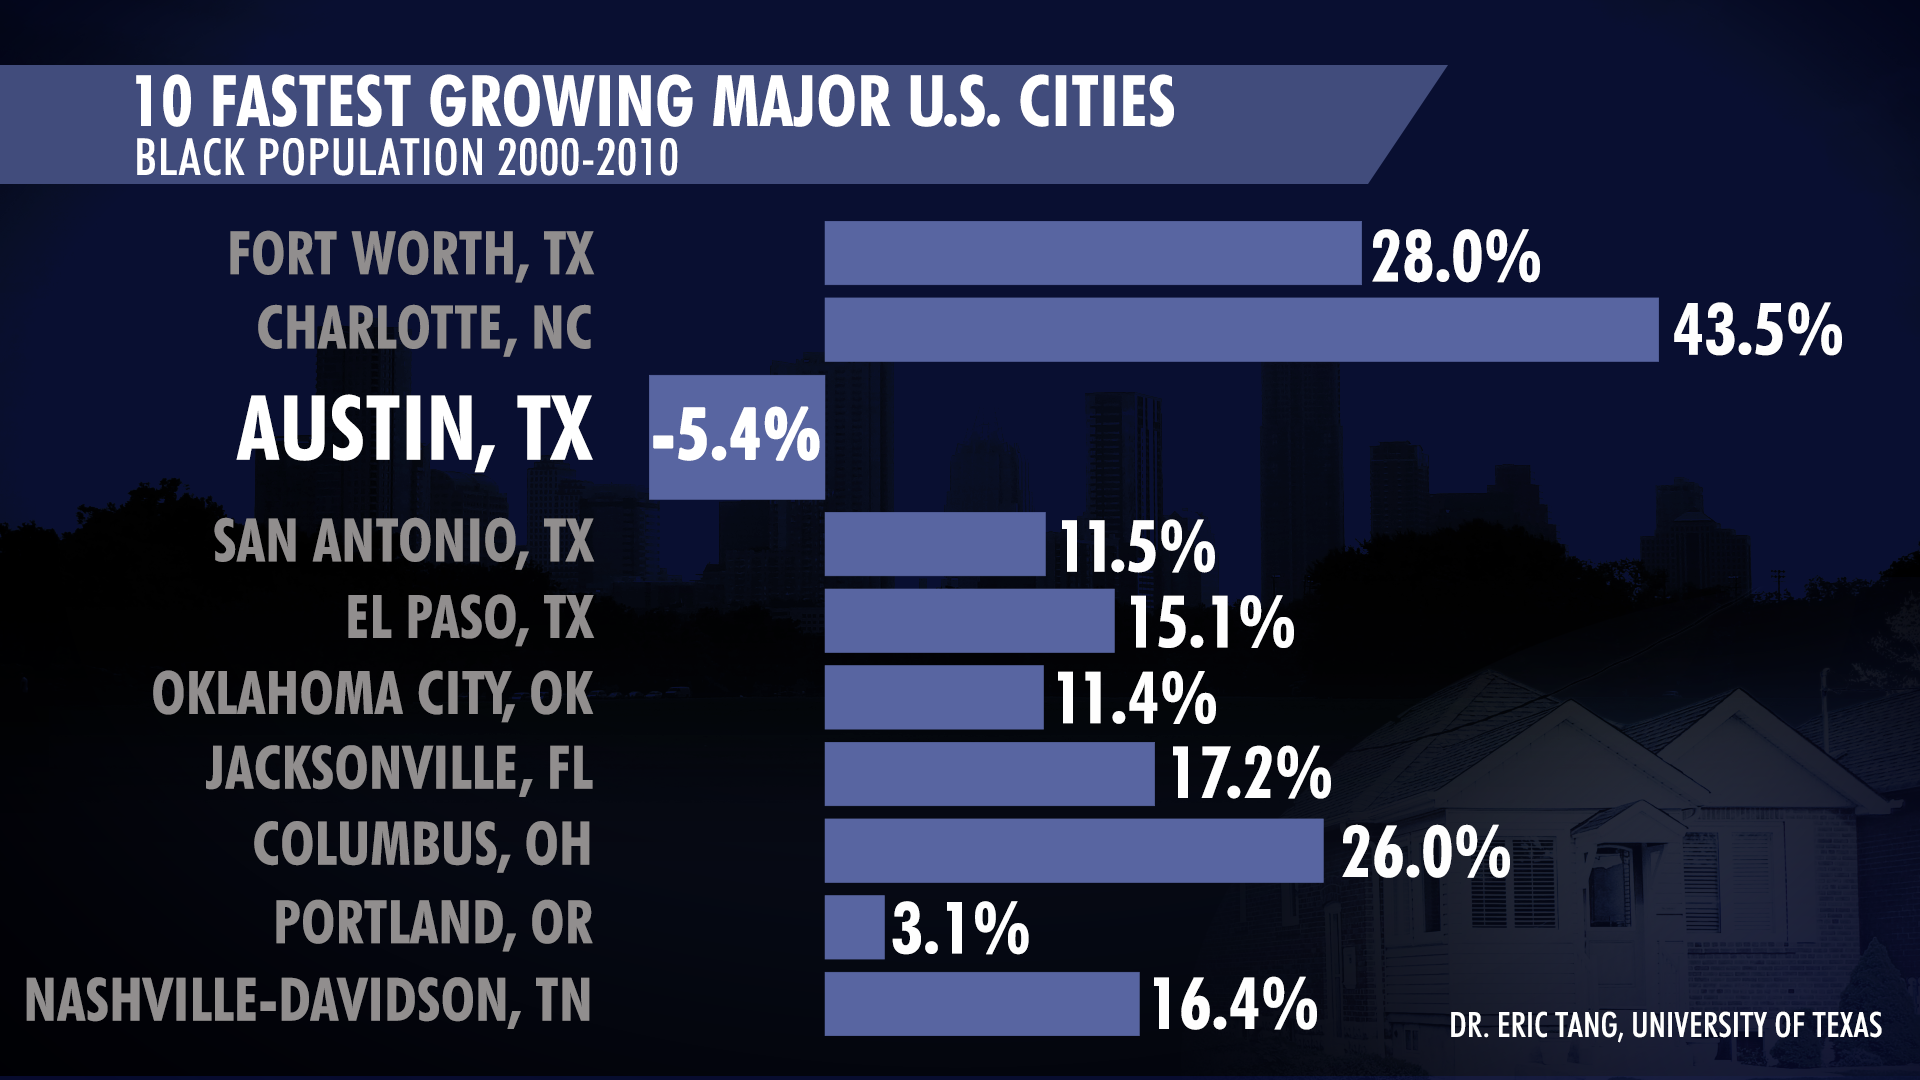 This chart from Dr. Eric Tang represents African-American population growth and general population growth for the 10 fastest-growing major cities in the United States from 2000-2010.  While most cities saw an increase in the Black population -- from 28% in Fort Worth to 43% in Charlotte North Carolina, 11.5% in San Antonio, 15.1% in El Paso, 11.4% in Oklahoma, 17.2% in Jacksonville, Florida, 26.0% in Columbus Ohio, 3.1% in Portland Oregon and 16.4% in Nashville-Davidson Tennessee -- Austin saw a decline of 5.4%.